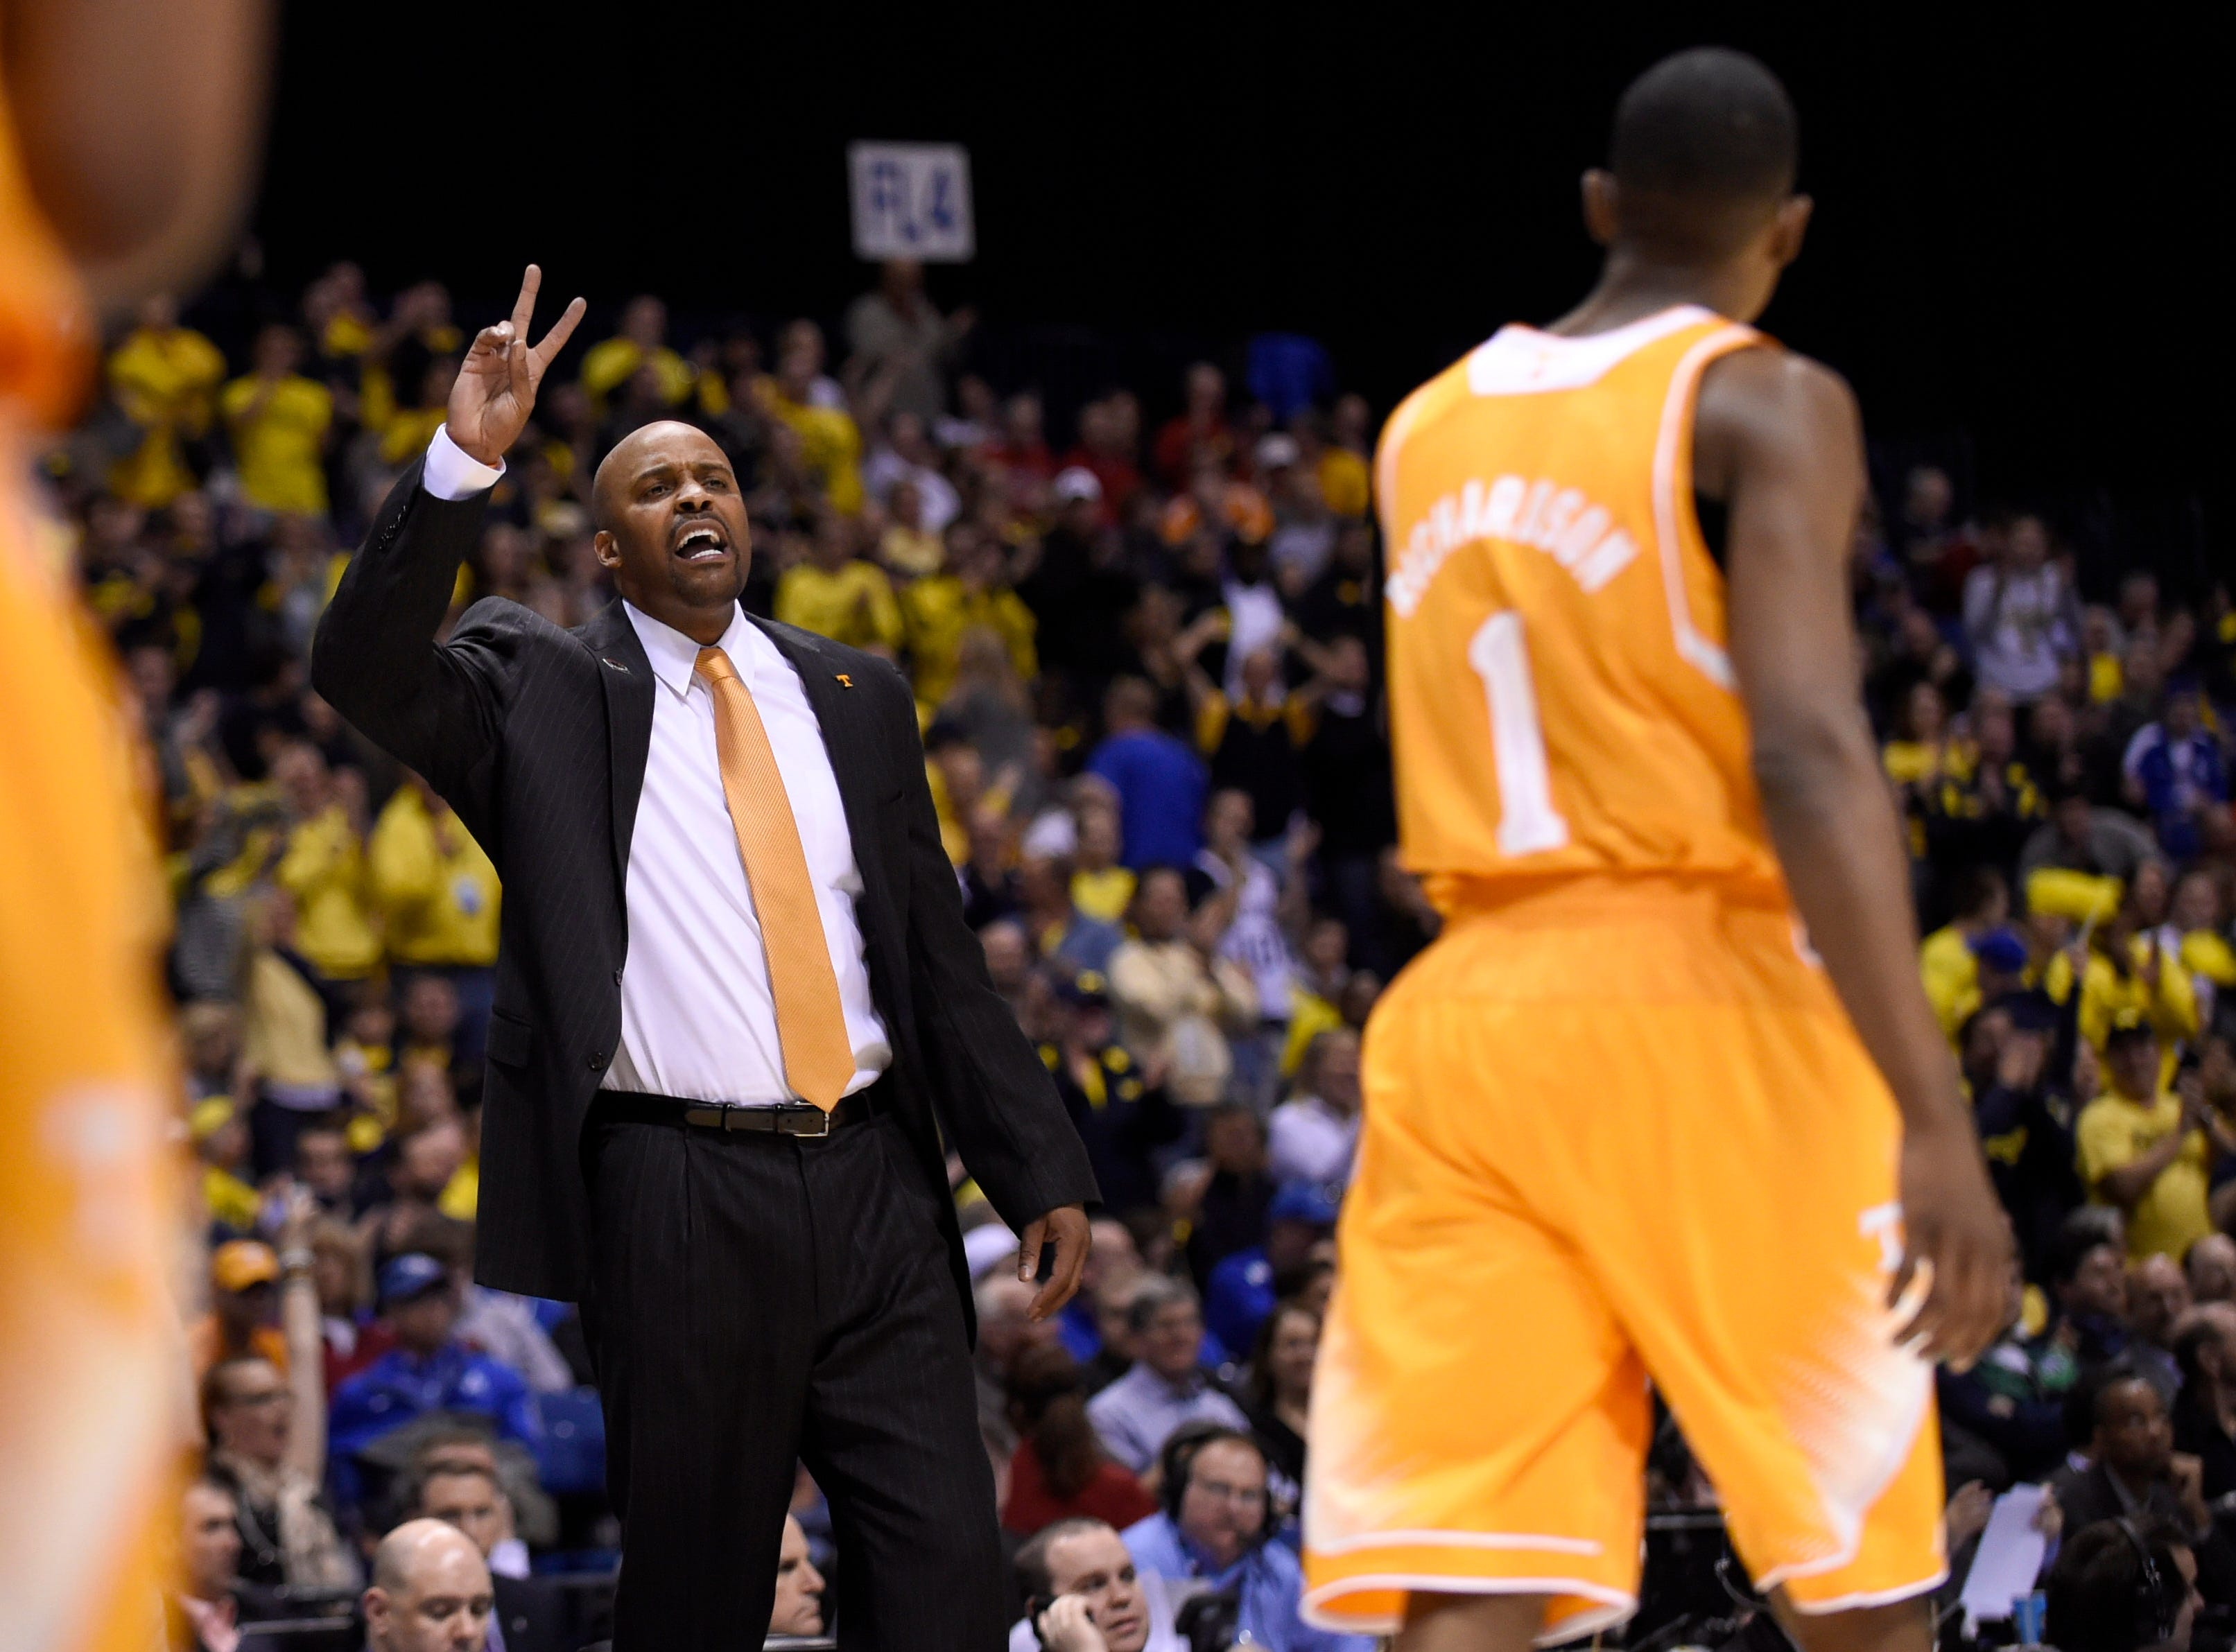 Tennessee head coach Cuonzo Martin shouts instructions  during an NCAA Sweet 16 game at Lucas Oil Stadium in Indianapolis, Ind. on Friday, March 28, 2014.